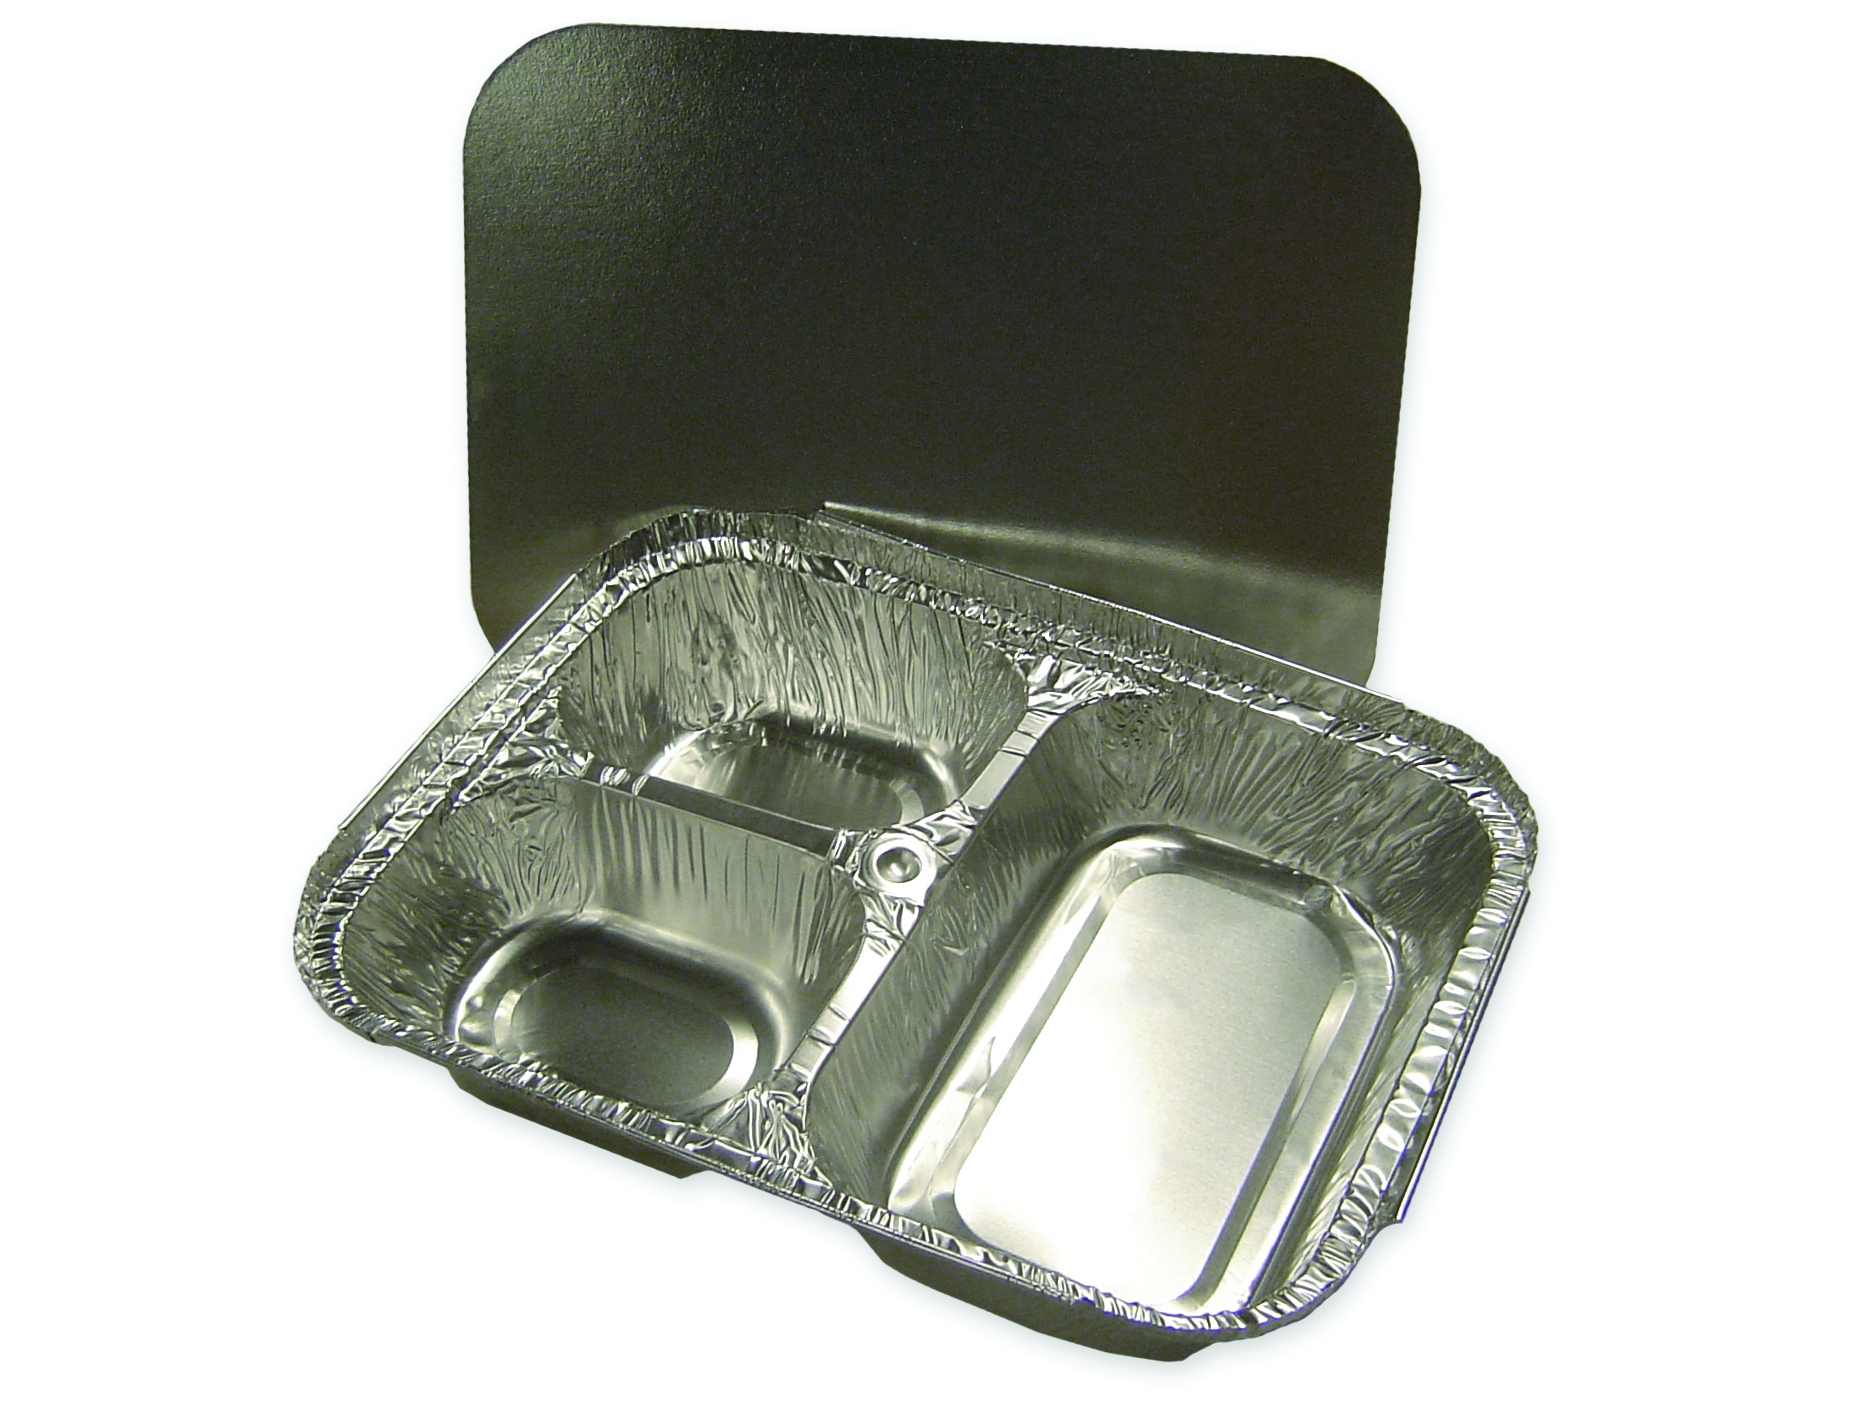 Three compartment aluminum container